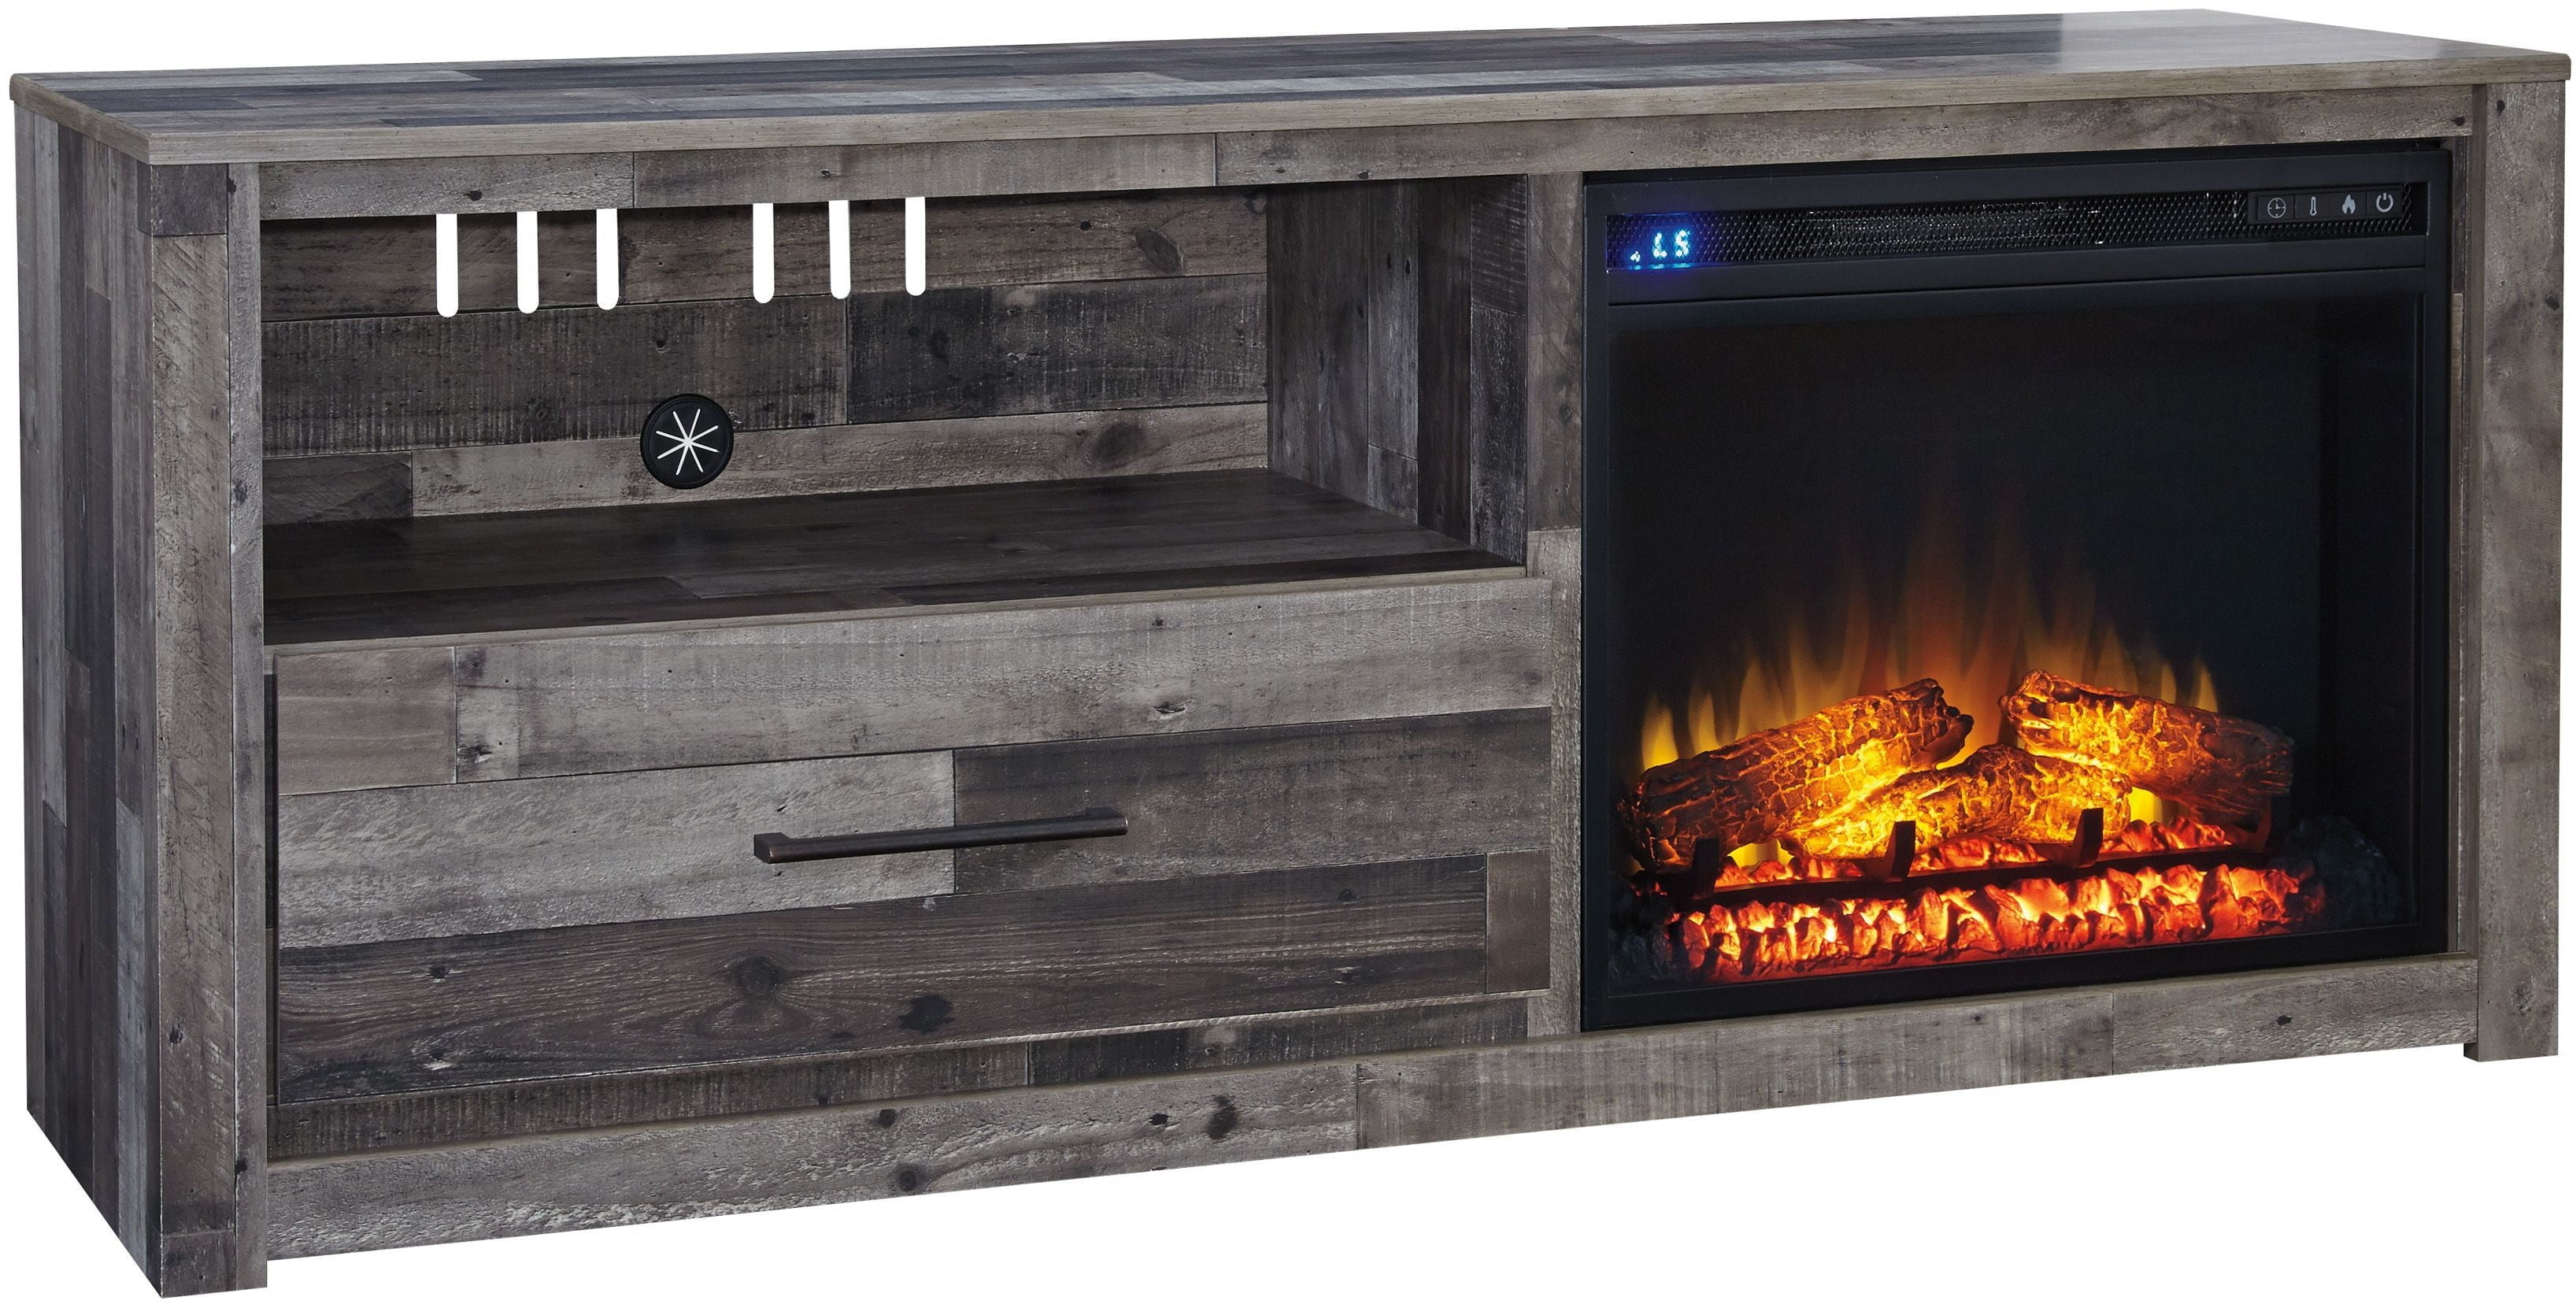 Derekson Gray LG TV Stand with Fireplace Insert from Ashley | Coleman Furniture